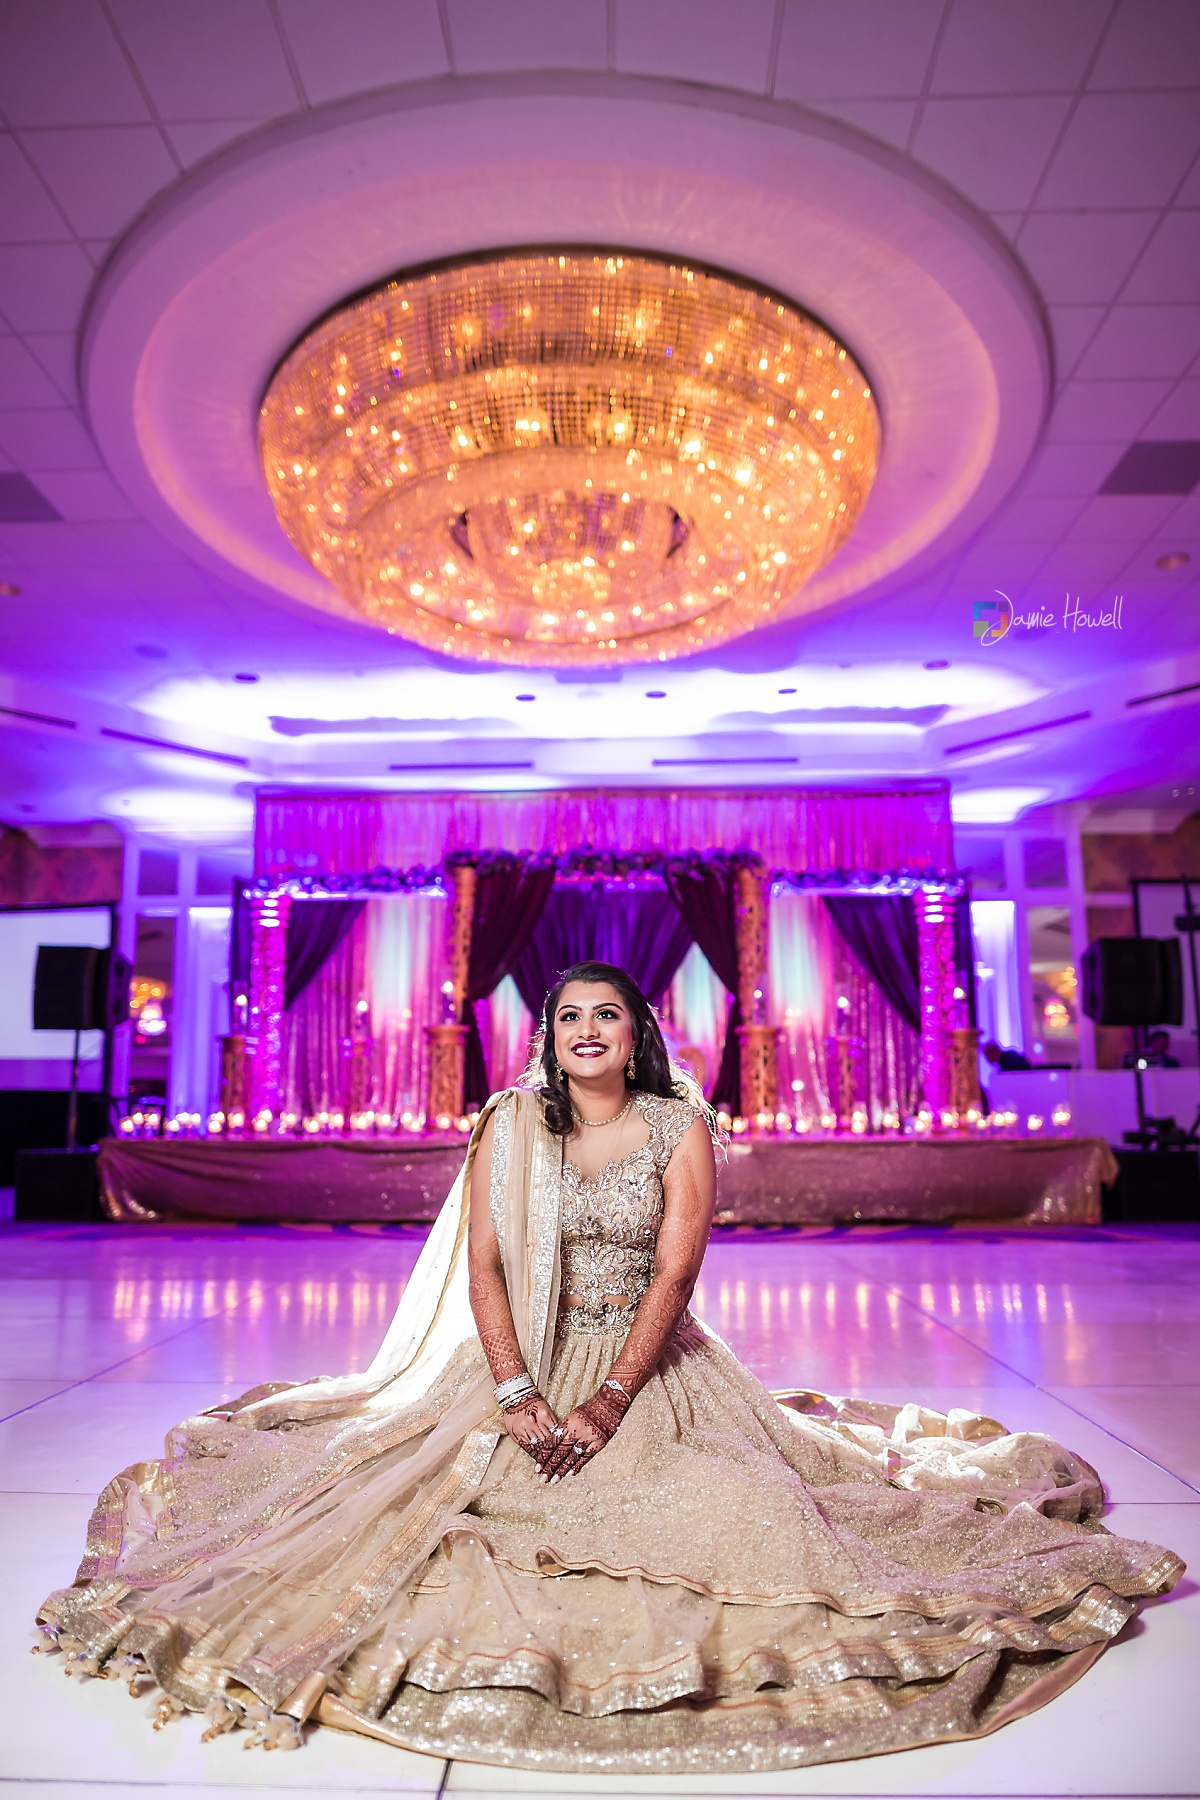 Hilton Charlotte Center South Asian Wedding (53)